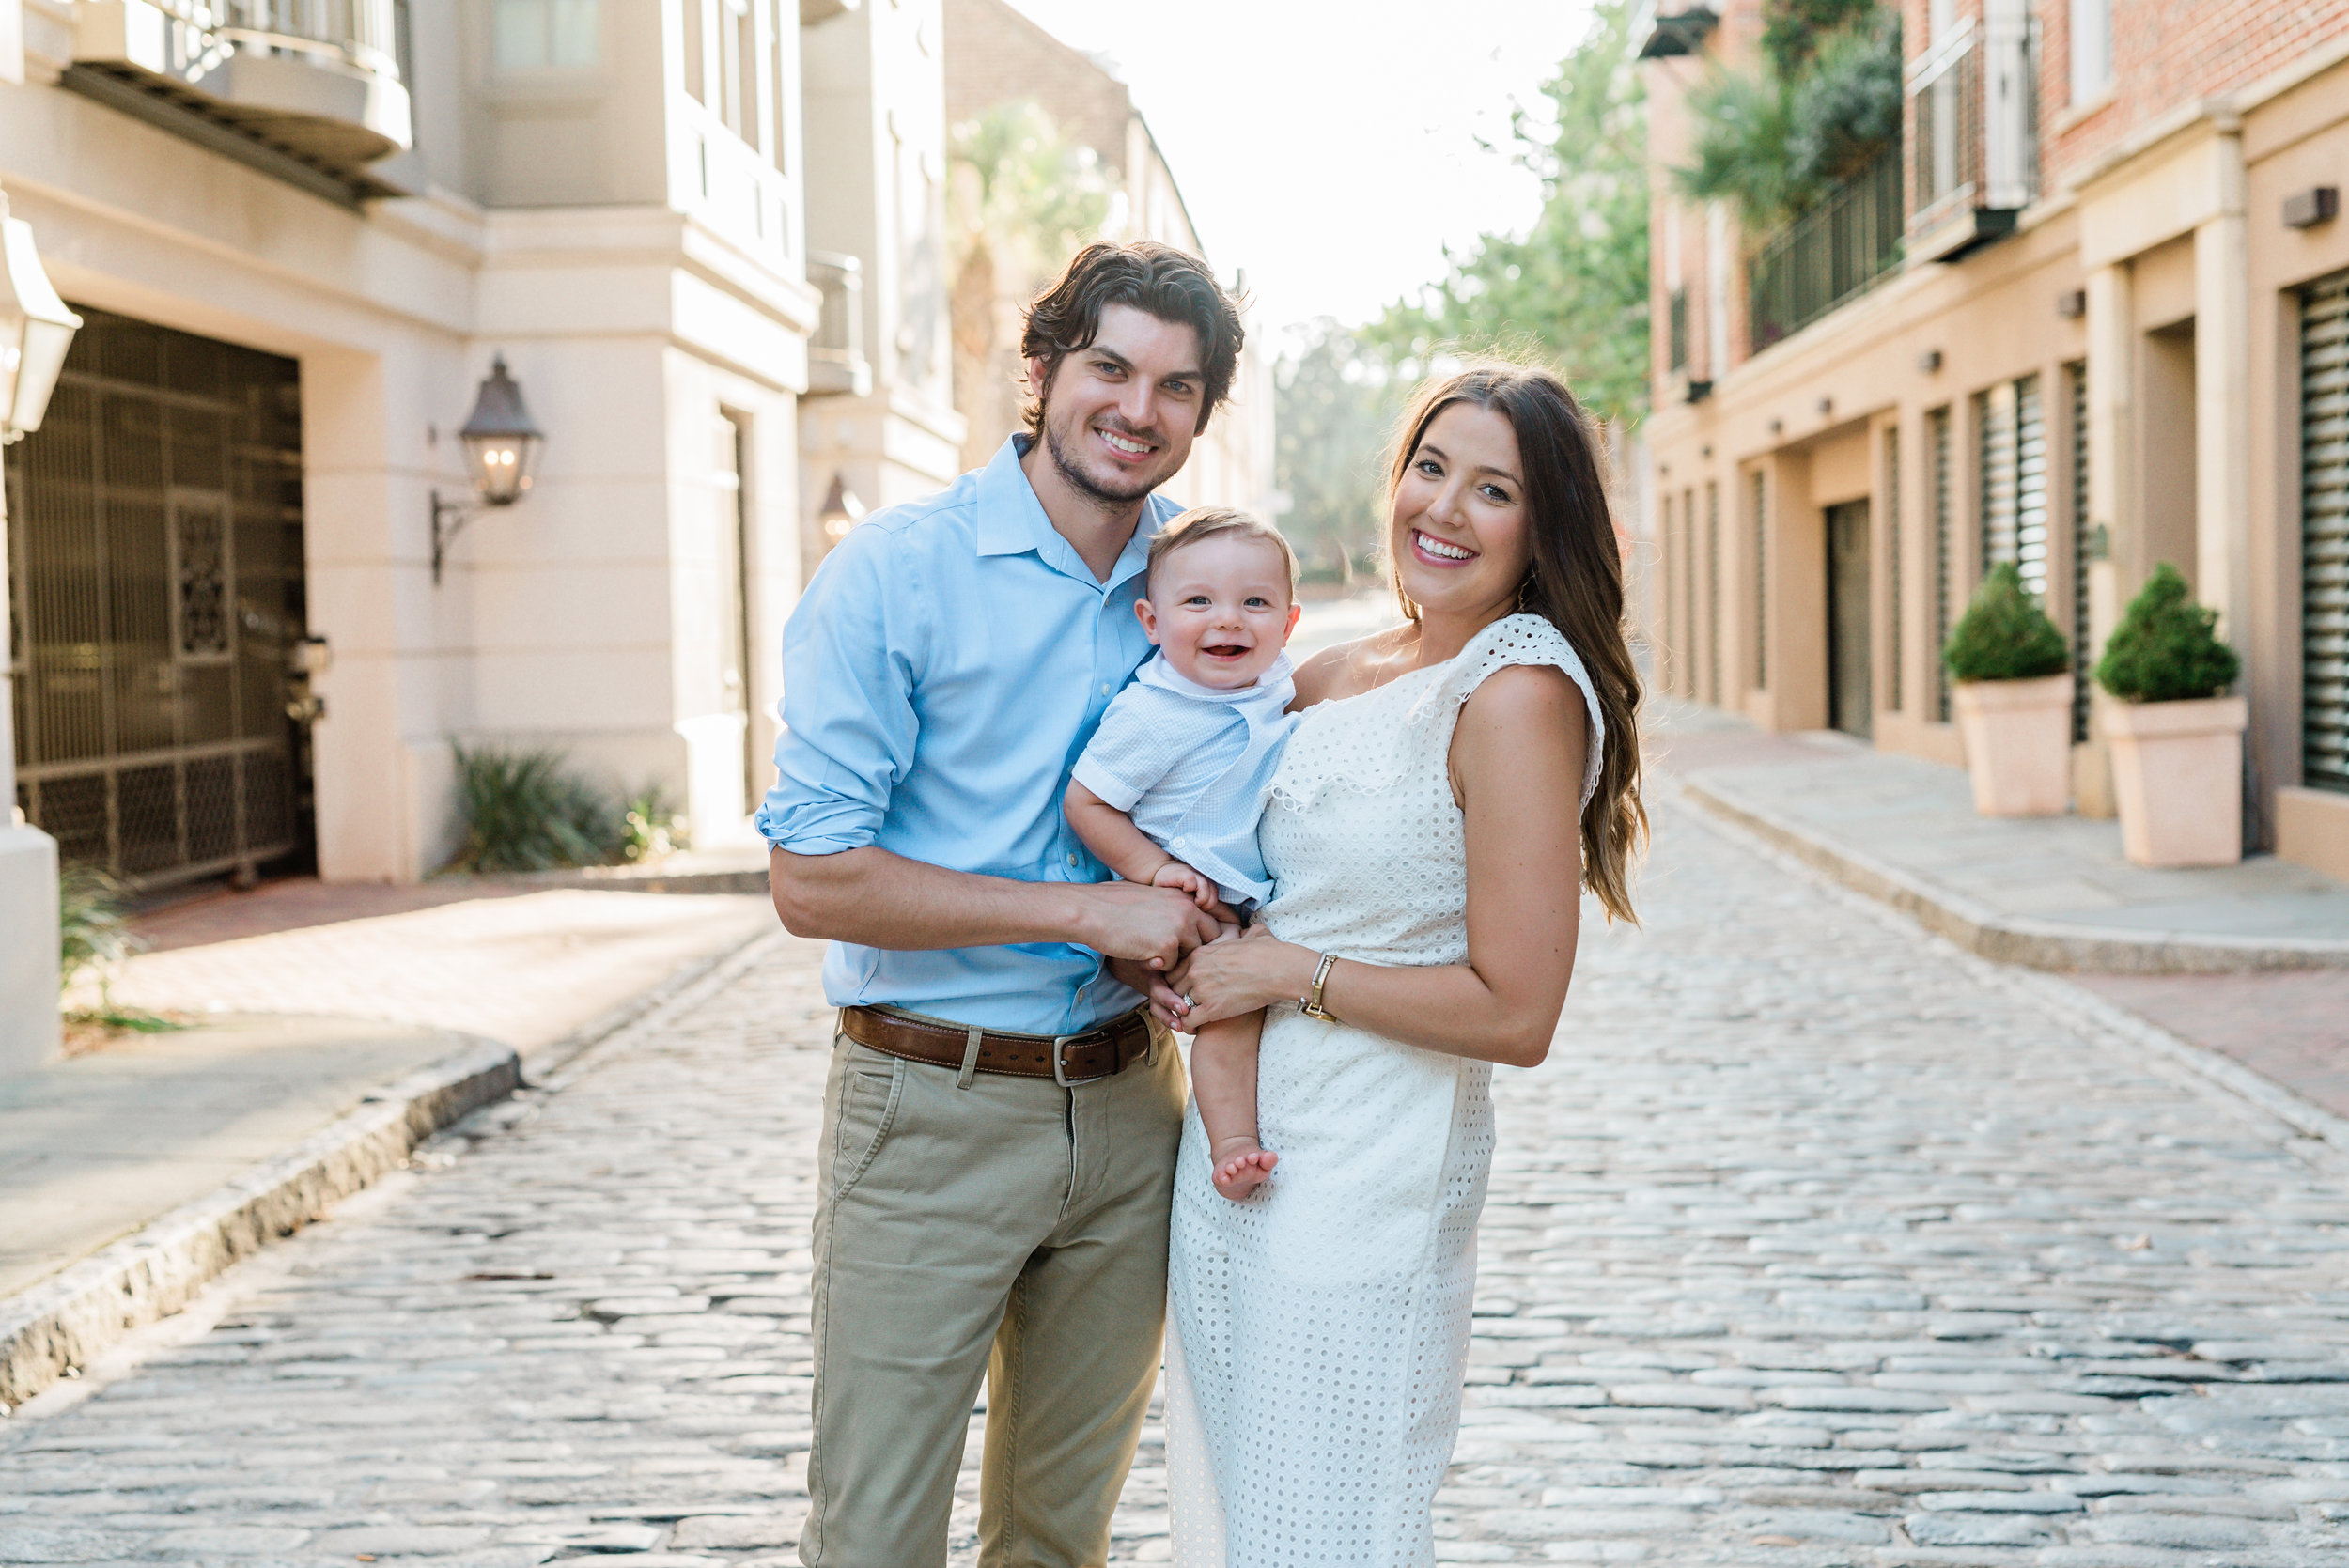 Charleston-Family-Photographer-Following-Seas-Photography-8415 copy.jpg